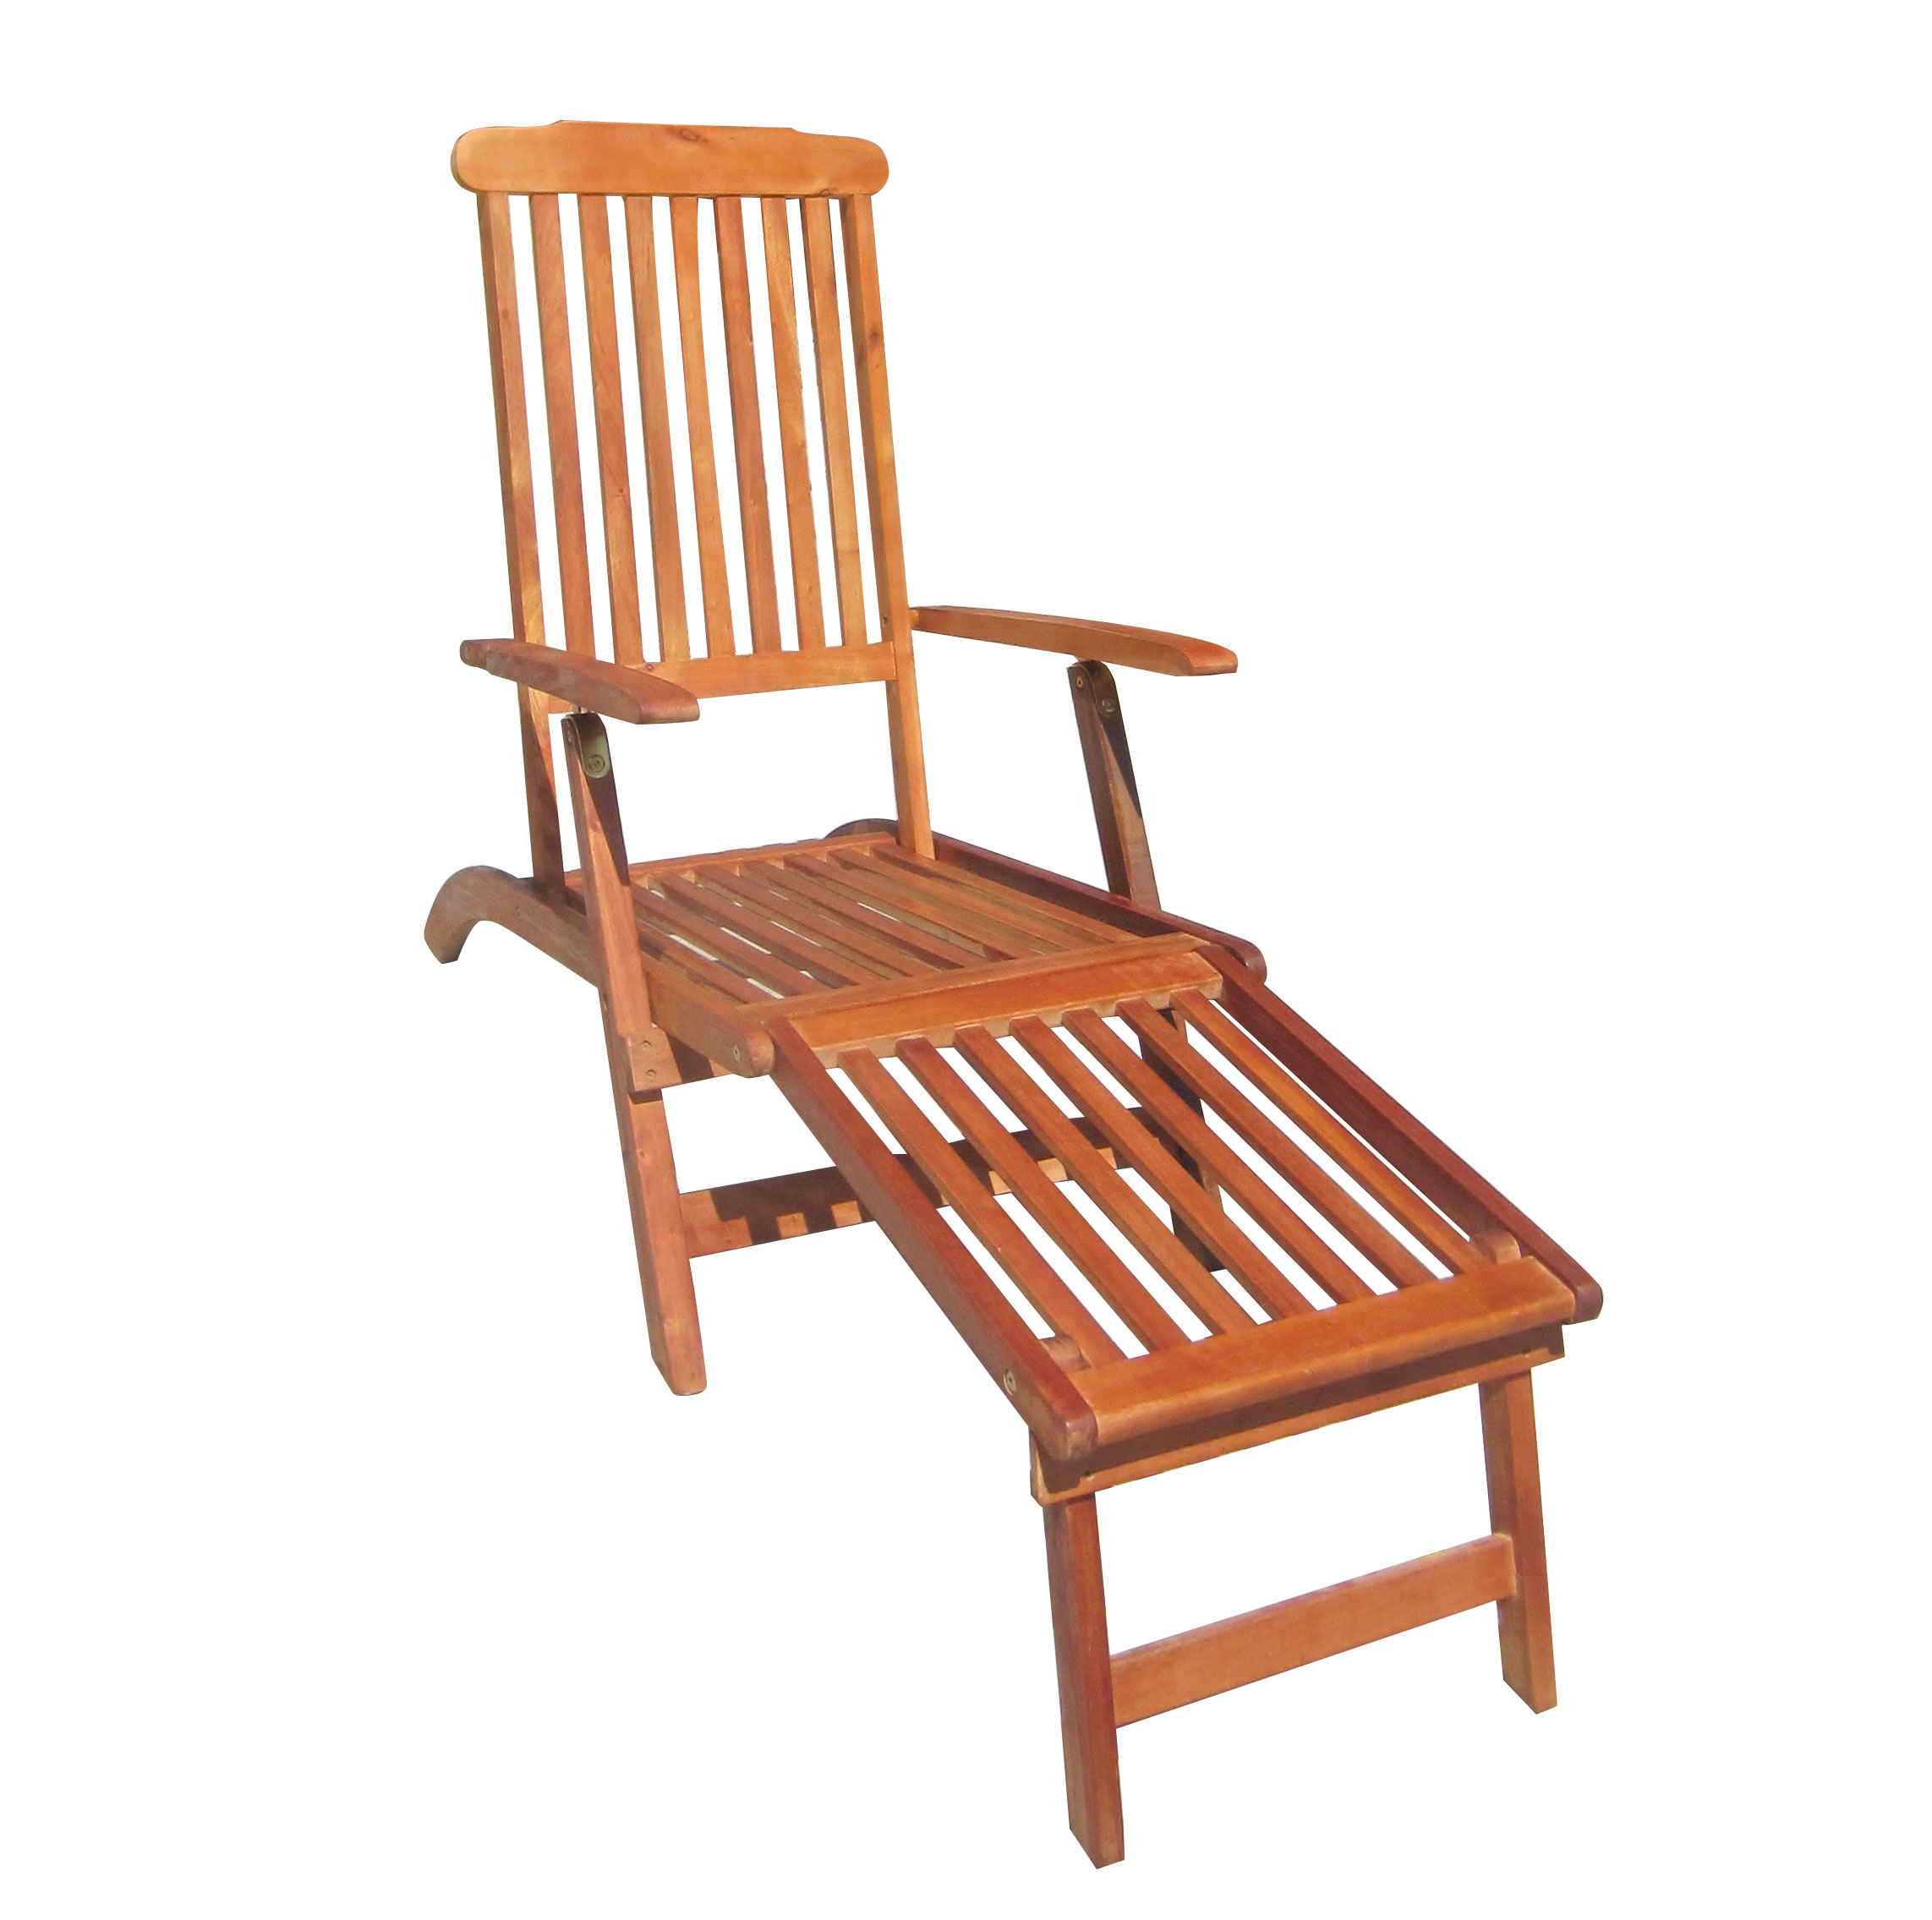 charles bentley hardwood folding steamer chair sun lounger